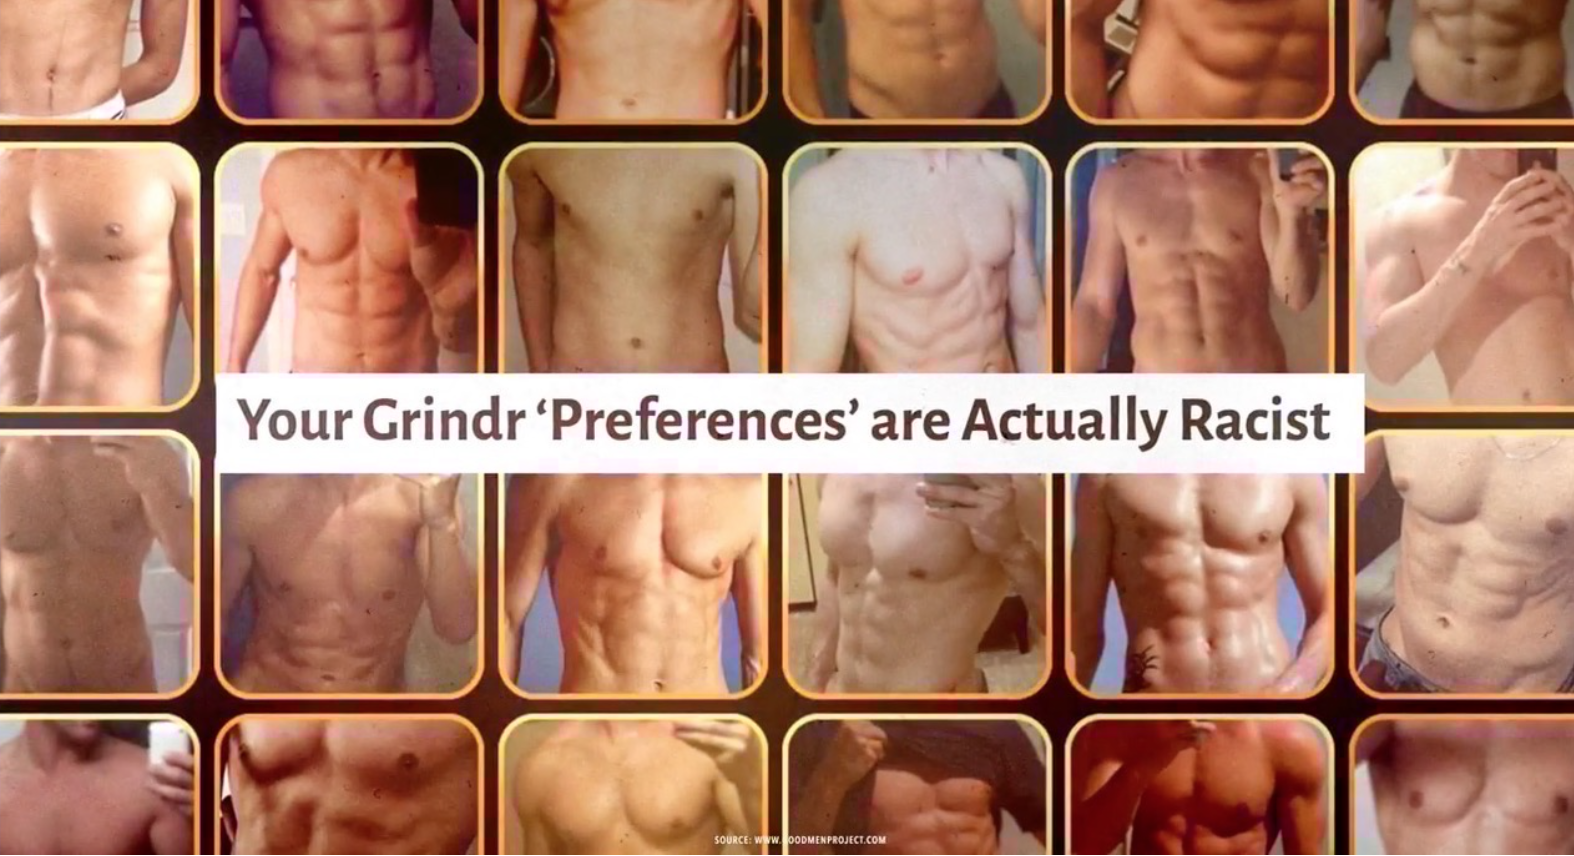 Jack'd Accuses Rival Grindr Of Failing To Combat Discrimination On Platform